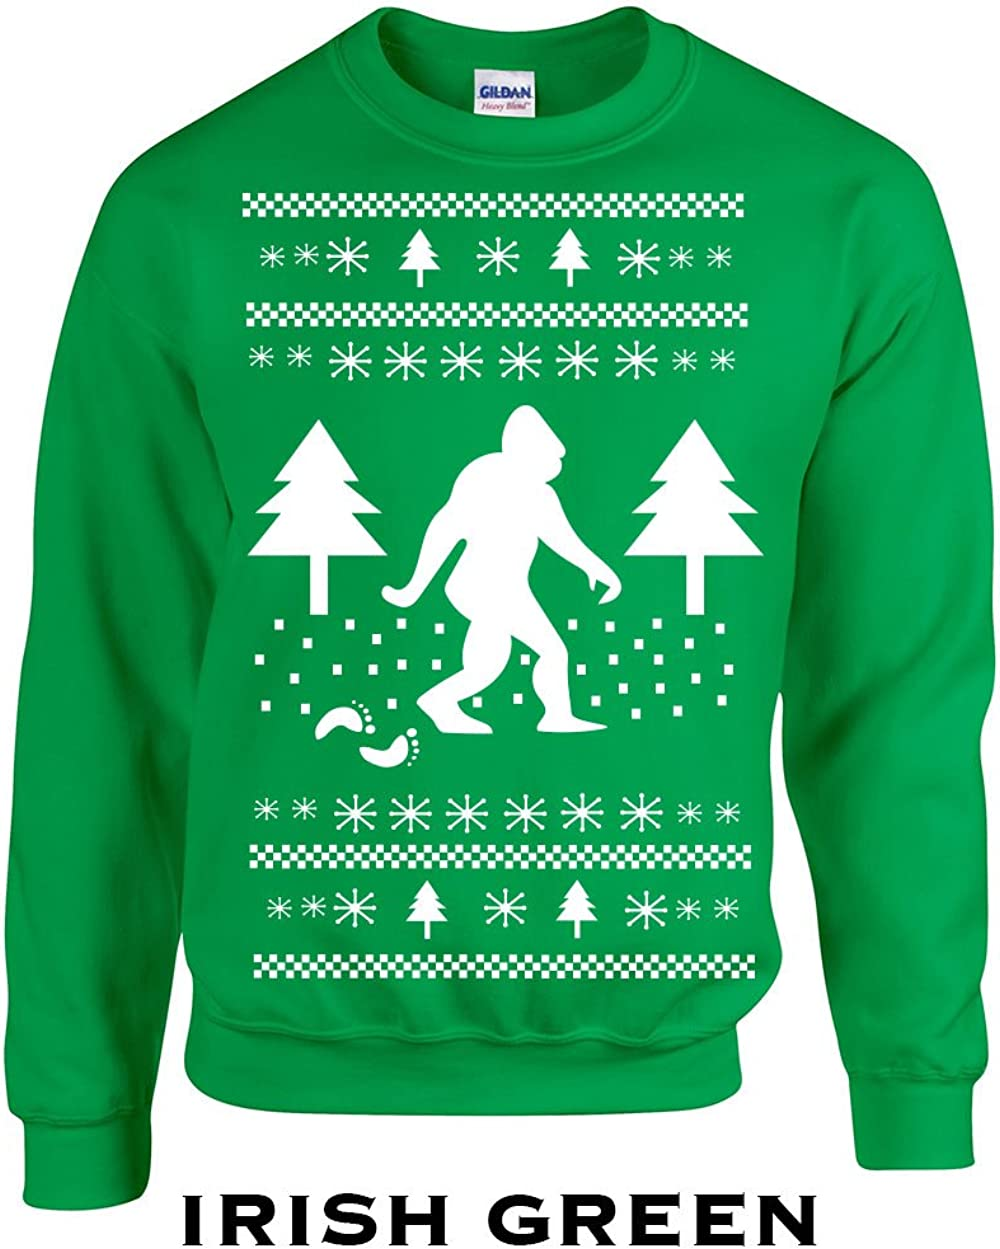 Swaffy Tees 359 Sasquatch Christmas Funny Adult Crew Sweatshirt